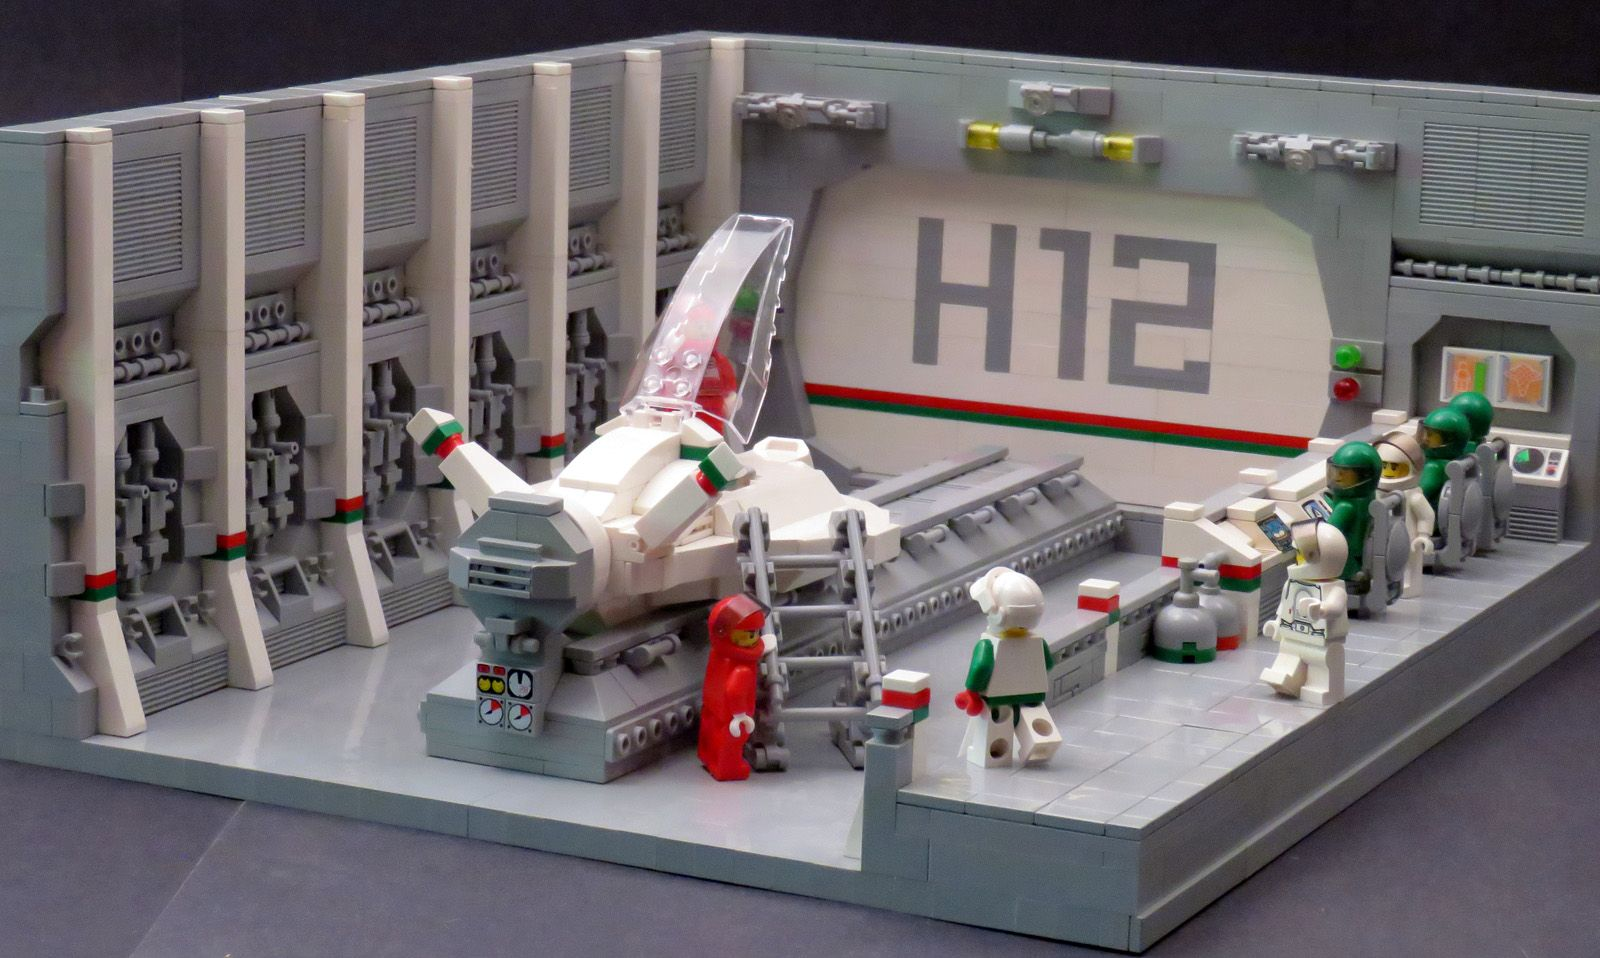 How To Build Stairs In A Small Space Sweet Lego Hangar Not Mine Though Lego Spaceship